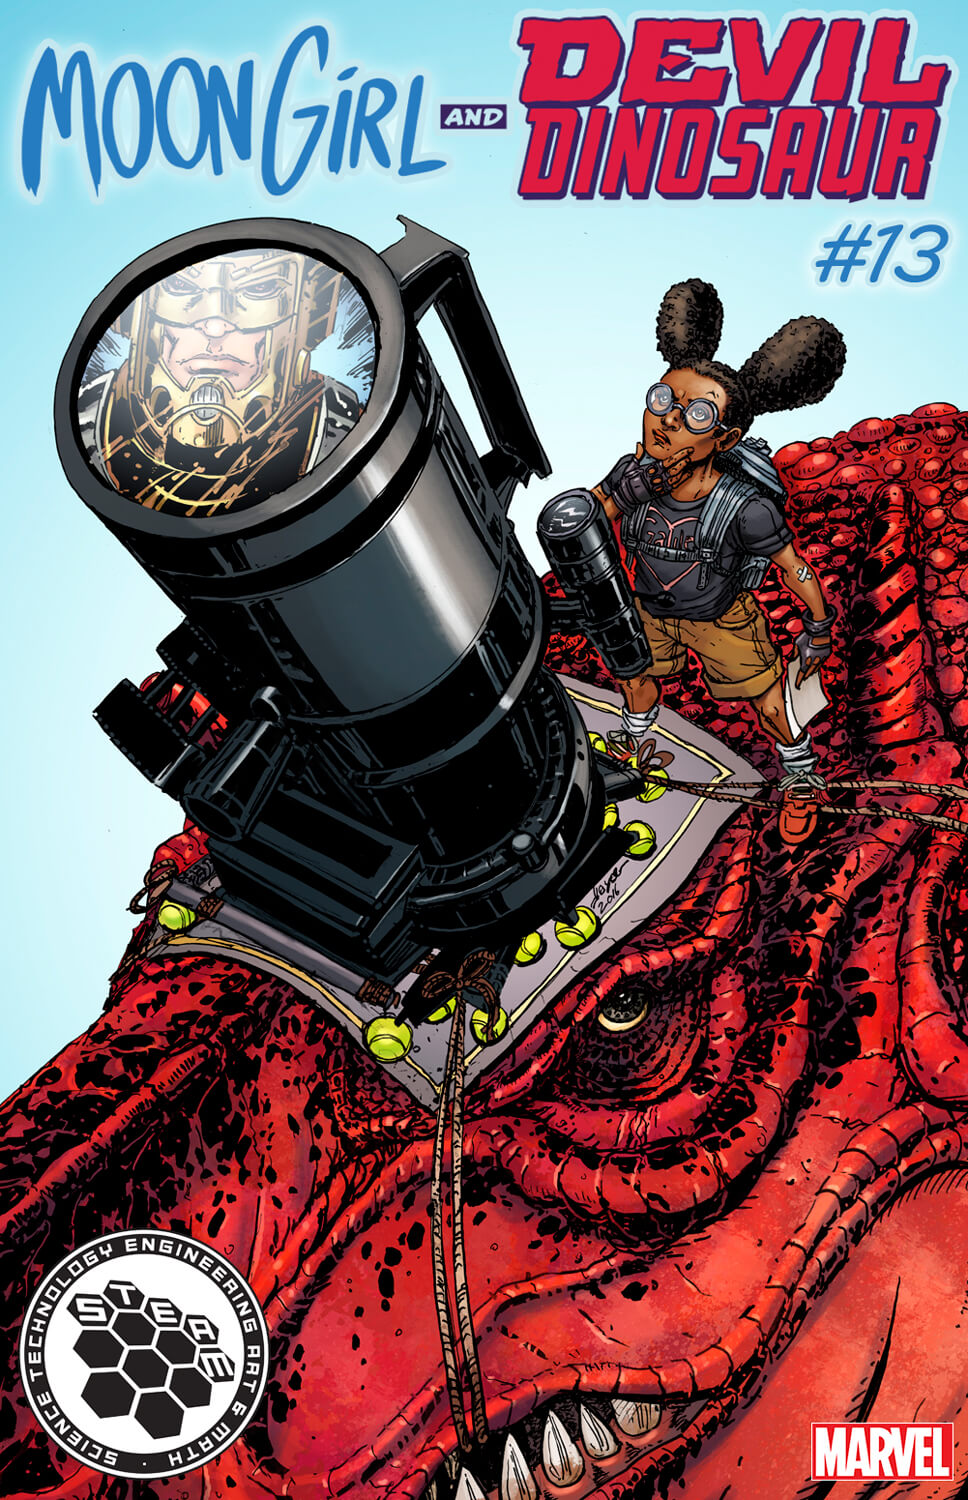 Moongirl & Devil Dinosaur 0013 STEAM Varient